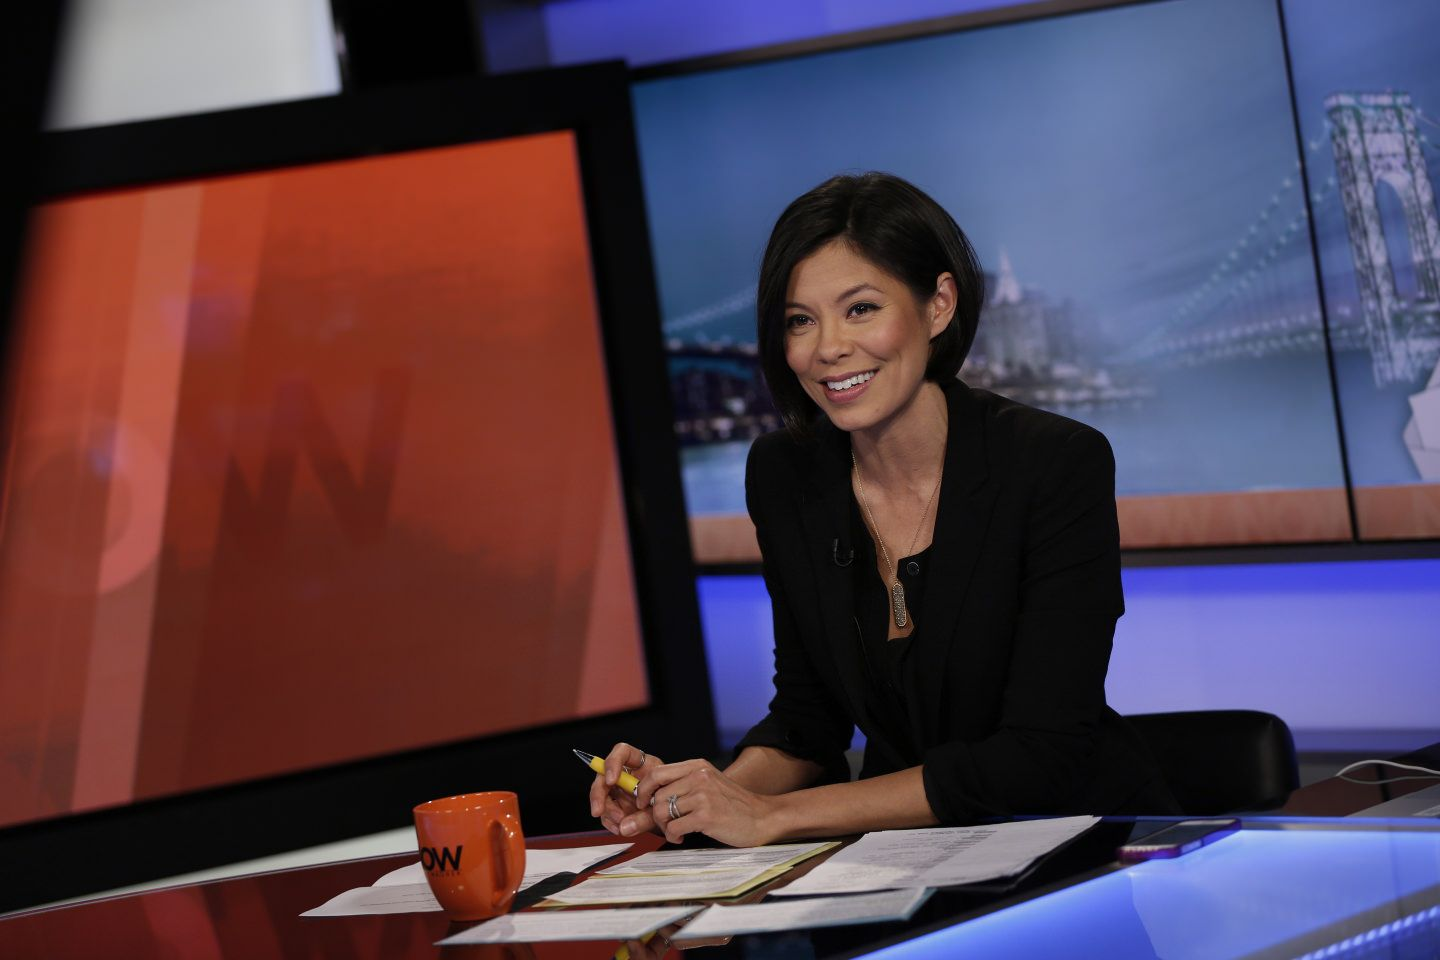 Total Boss Alex Wagner Wishes Women Didn't Have To Wear So Much Makeup On TV